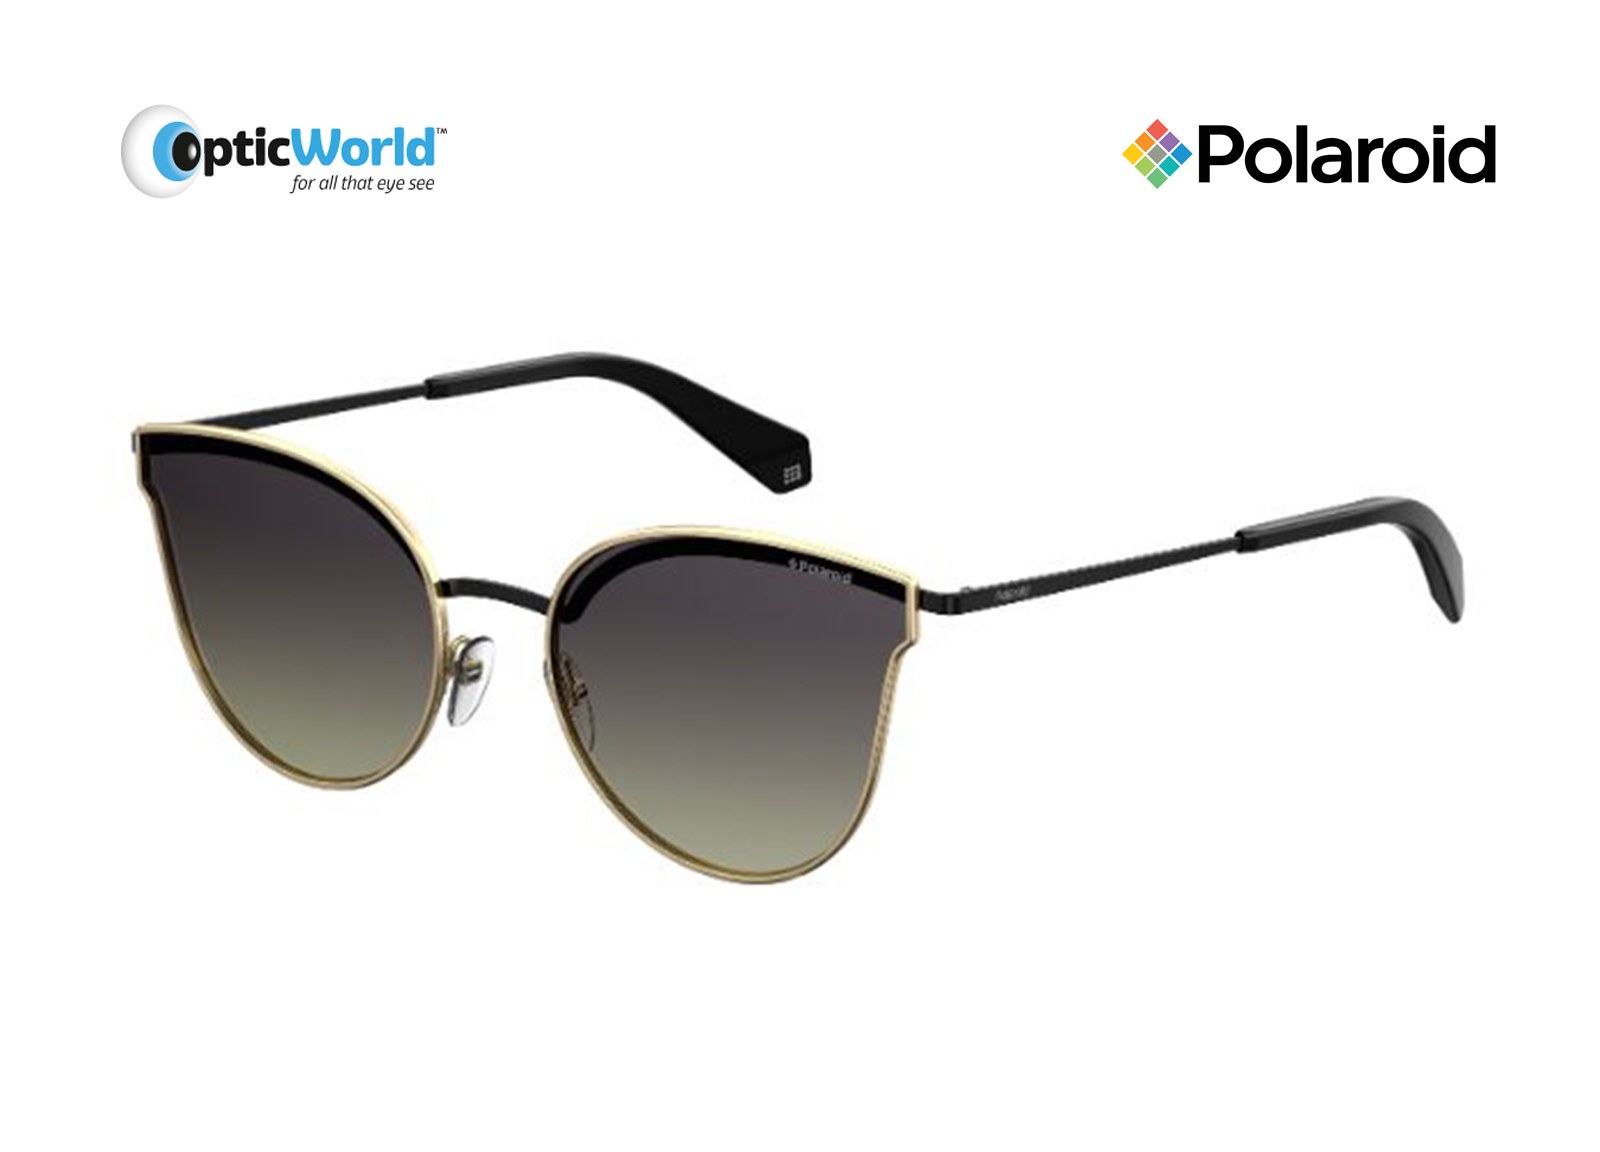 bef7aac729 Sunglasses Polaroid Polarized Pld4056 s J5g WJ 58-19 Gold Black Gradient.  About this product. Picture 1 of 2  Picture 2 of 2